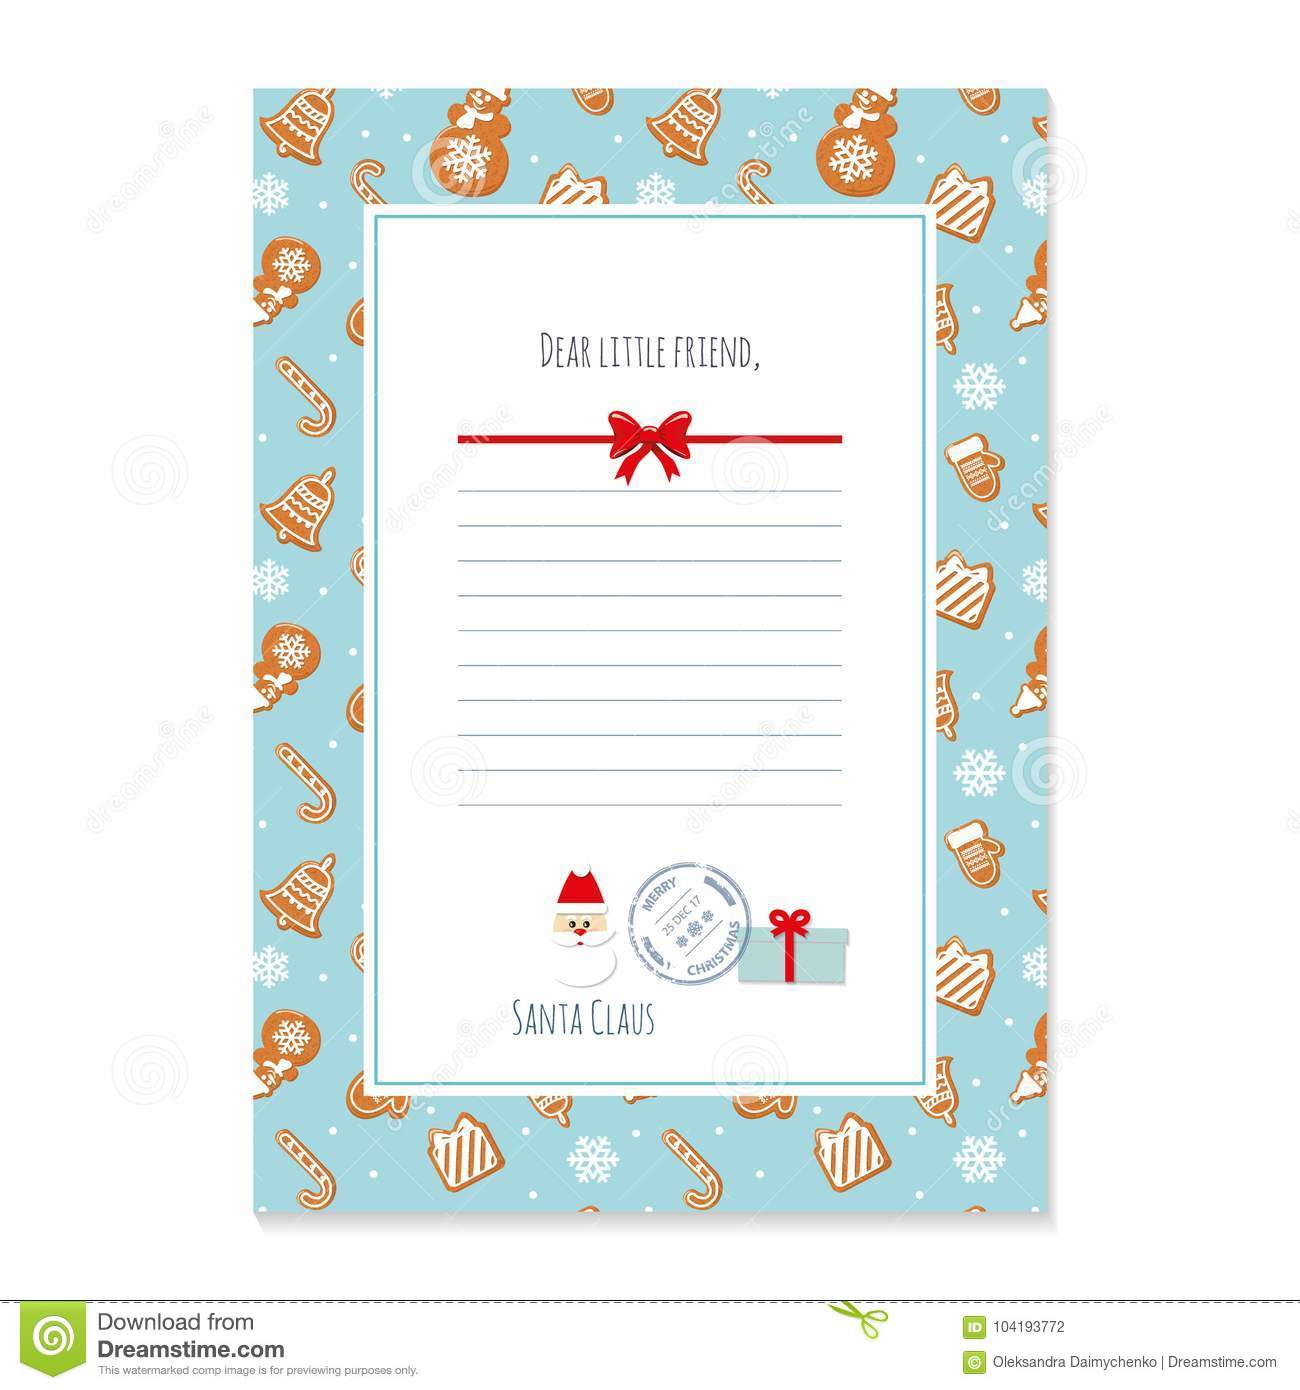 Christmas Letter From Santa Claus Template Layout In A Size